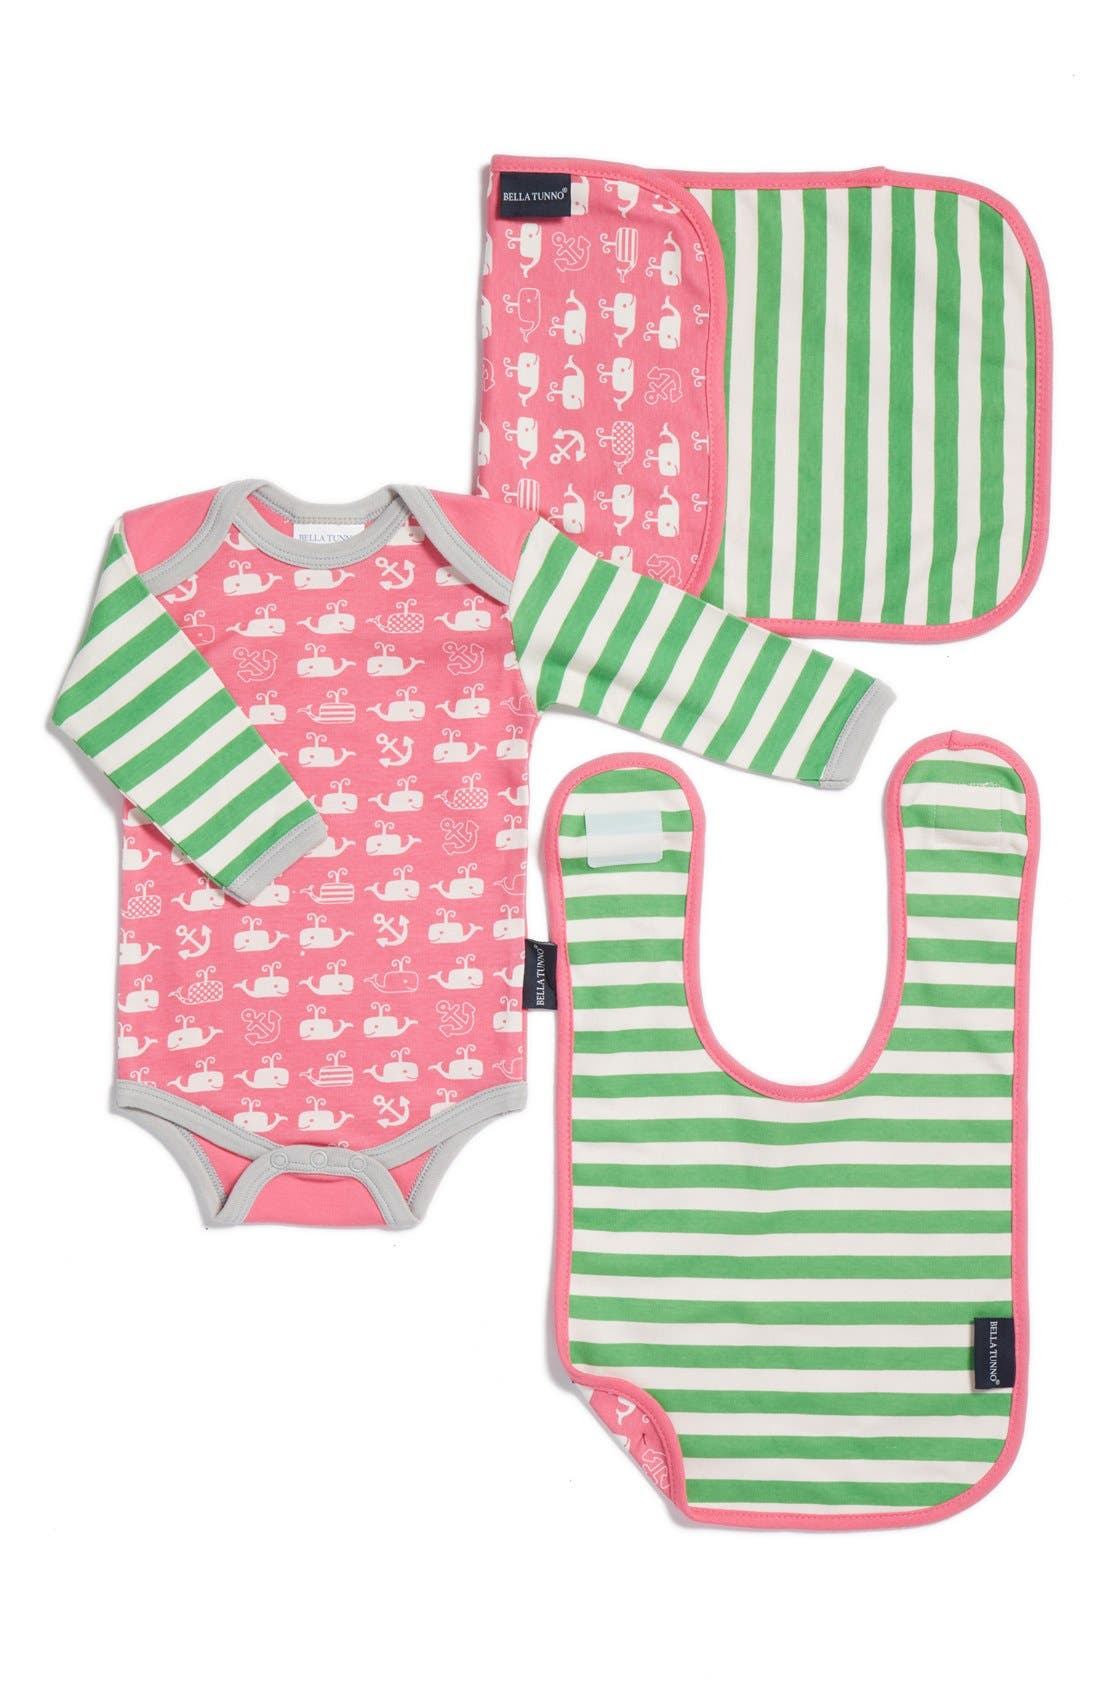 BELLA TUNNO Bodysuit, Bib & Burpie Cloth Set